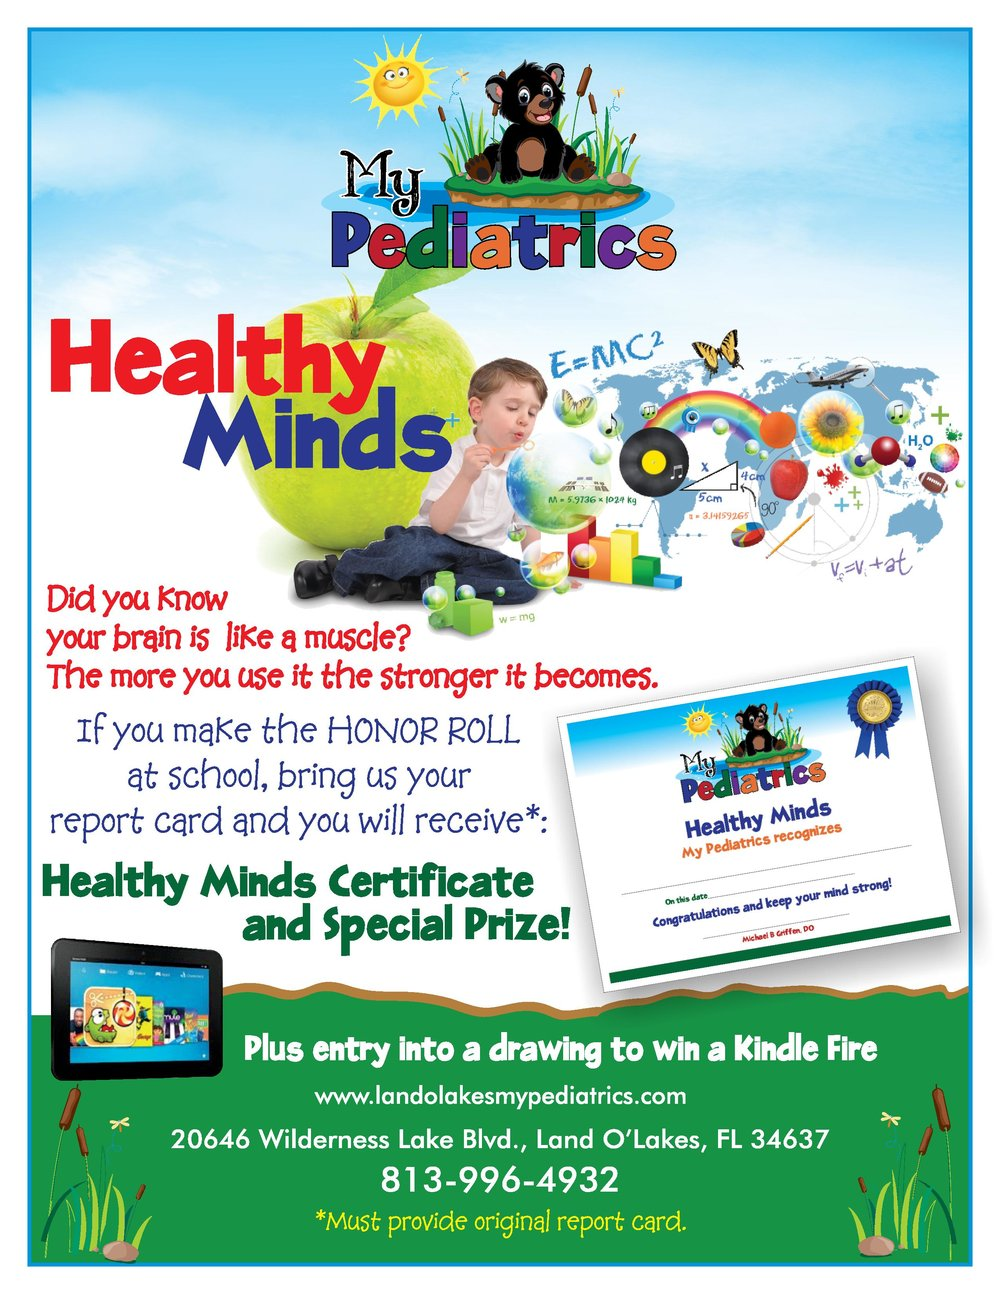 My Peds Healthy Minds Poster 8 (1)-page-001.jpg